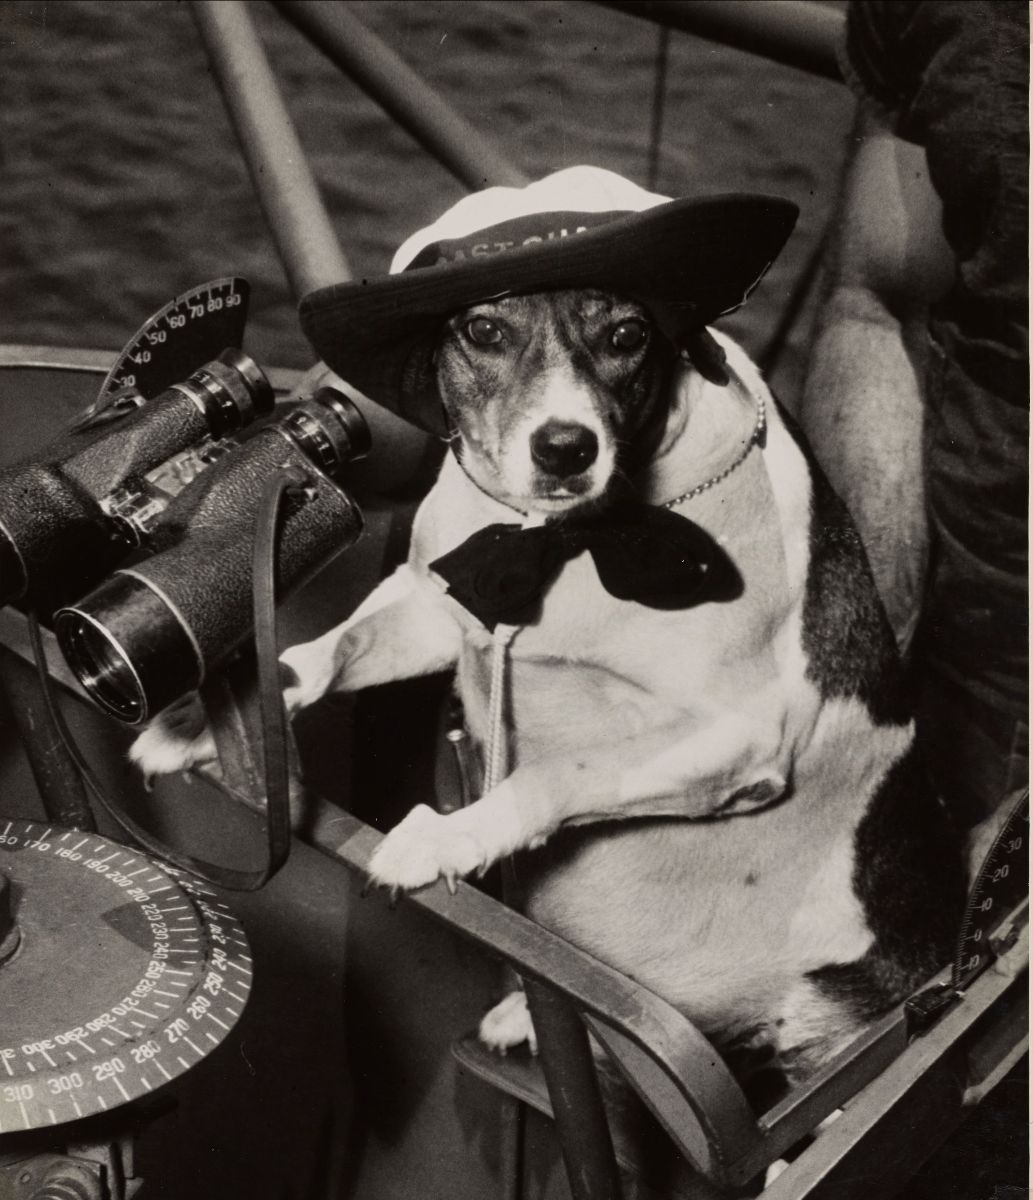 Black and white photograph of a small dog, wearing a hat and tie, sitting in front of binoculars and a compass